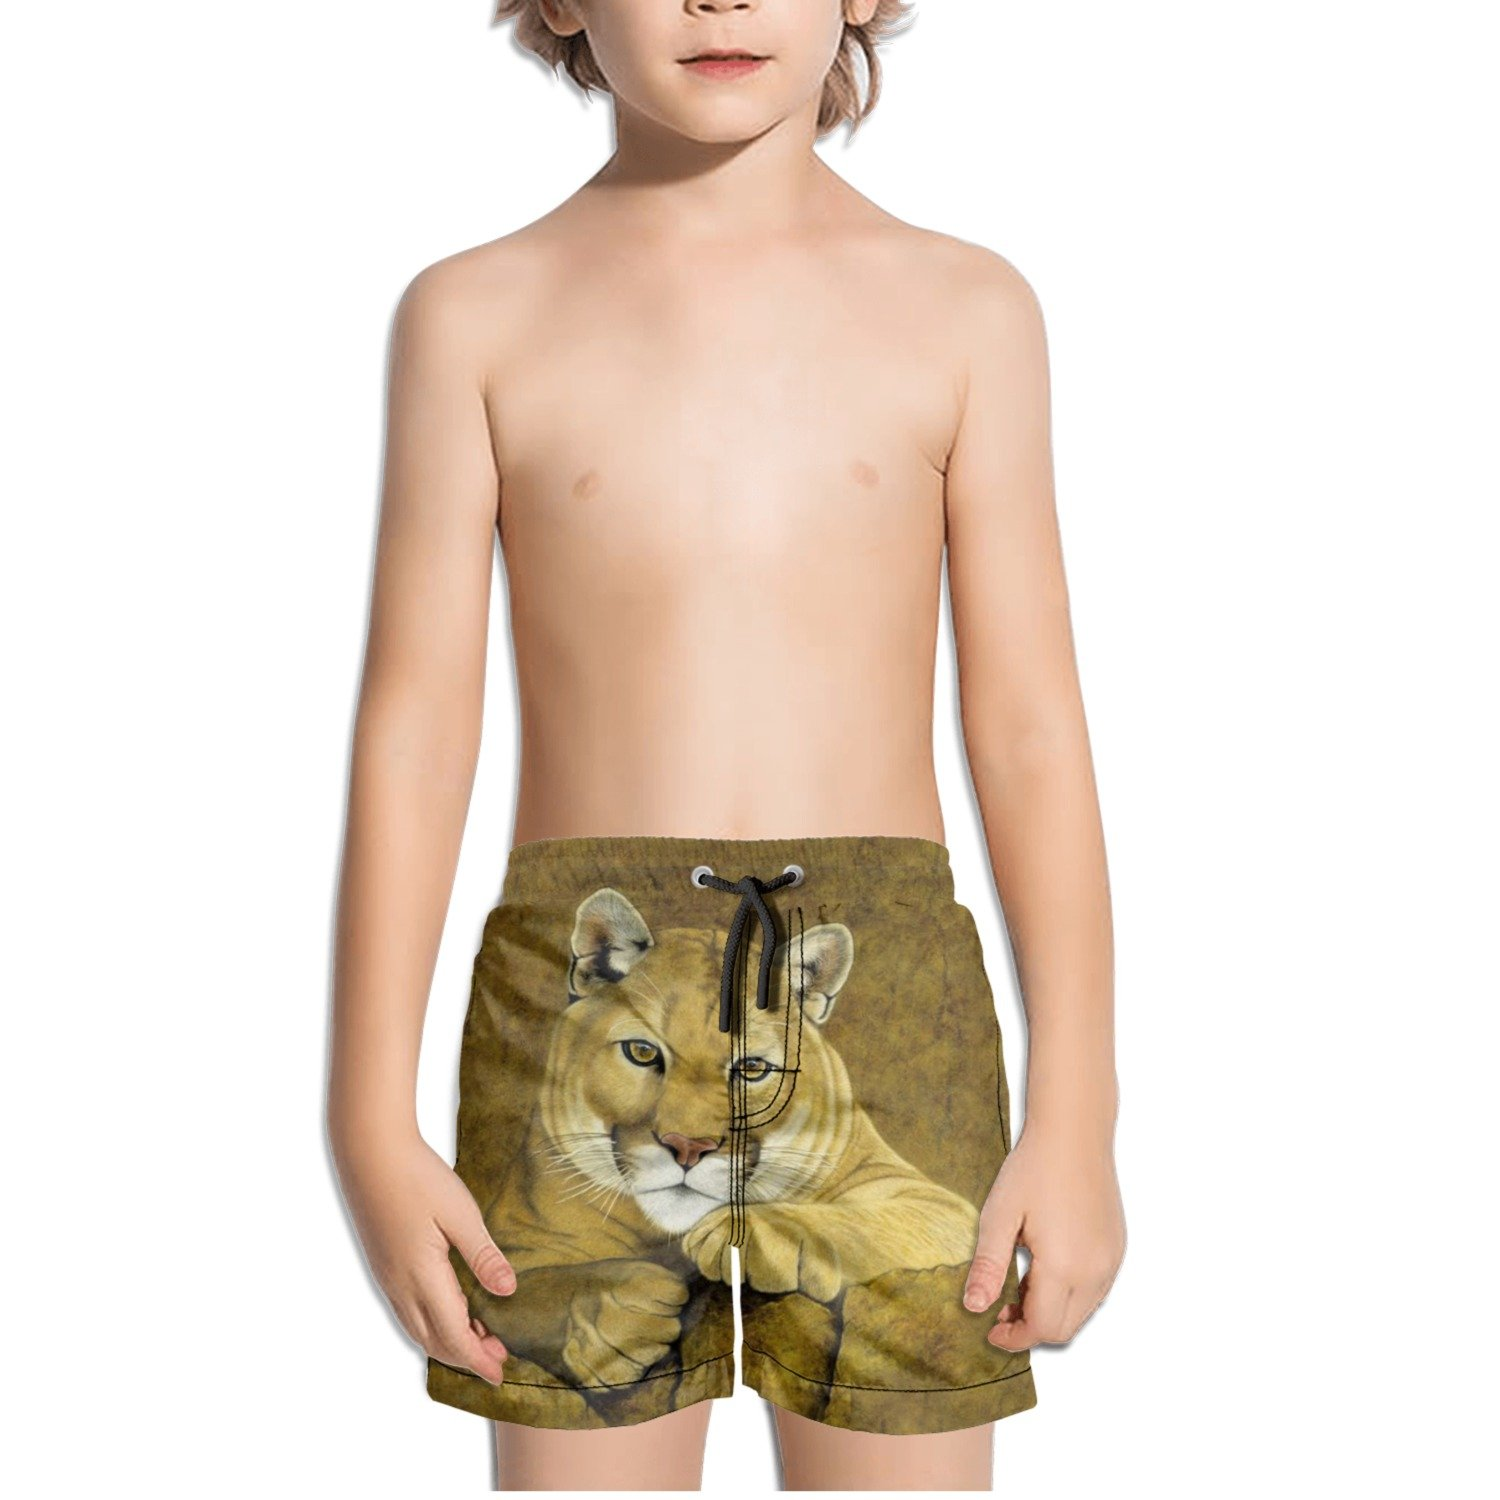 Cougar Watercolor Drawing Kids Boys Fast Drying Beach Swim Trunks Pants